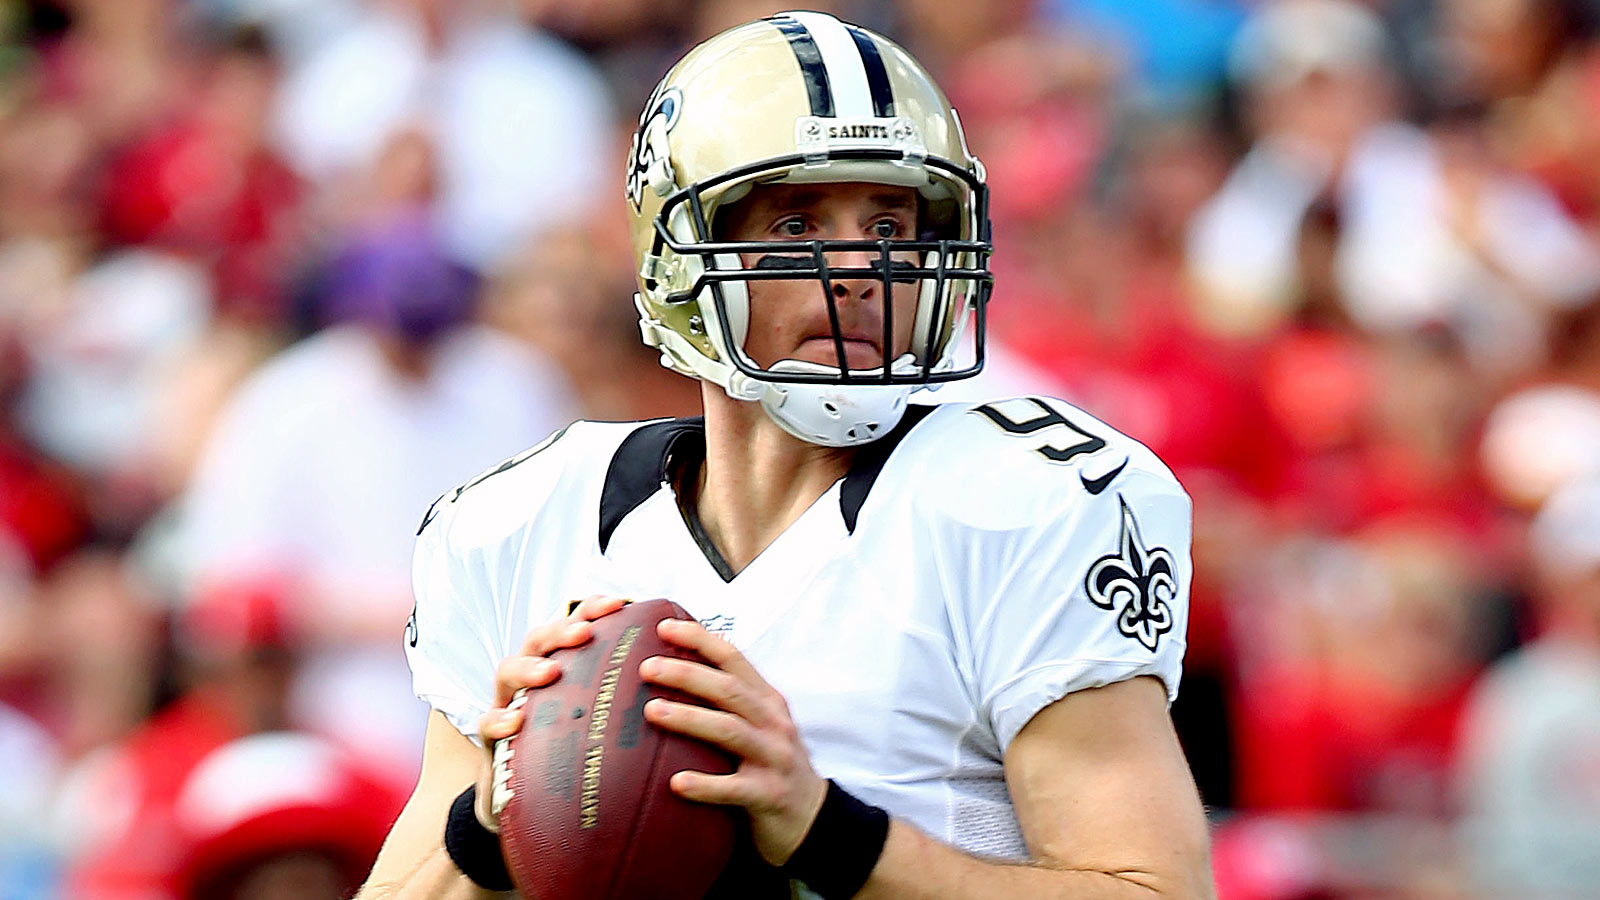 Saints' Brees continues to climb career passing ladder